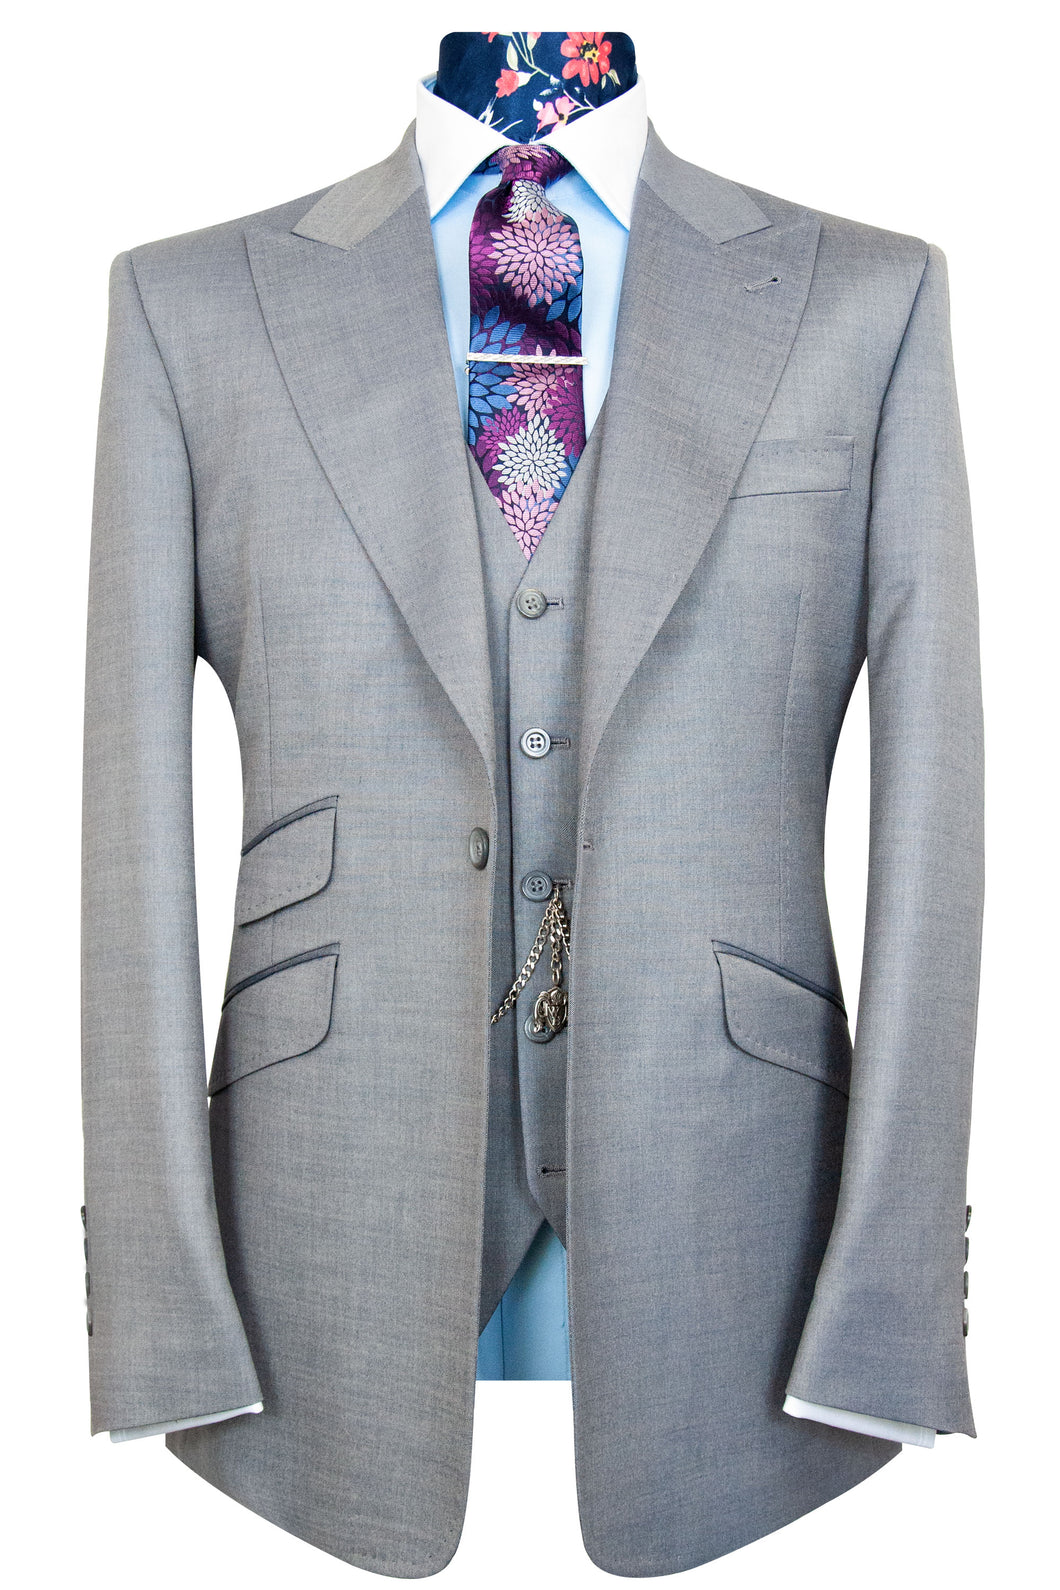 The Mountney Silver Grey Suit